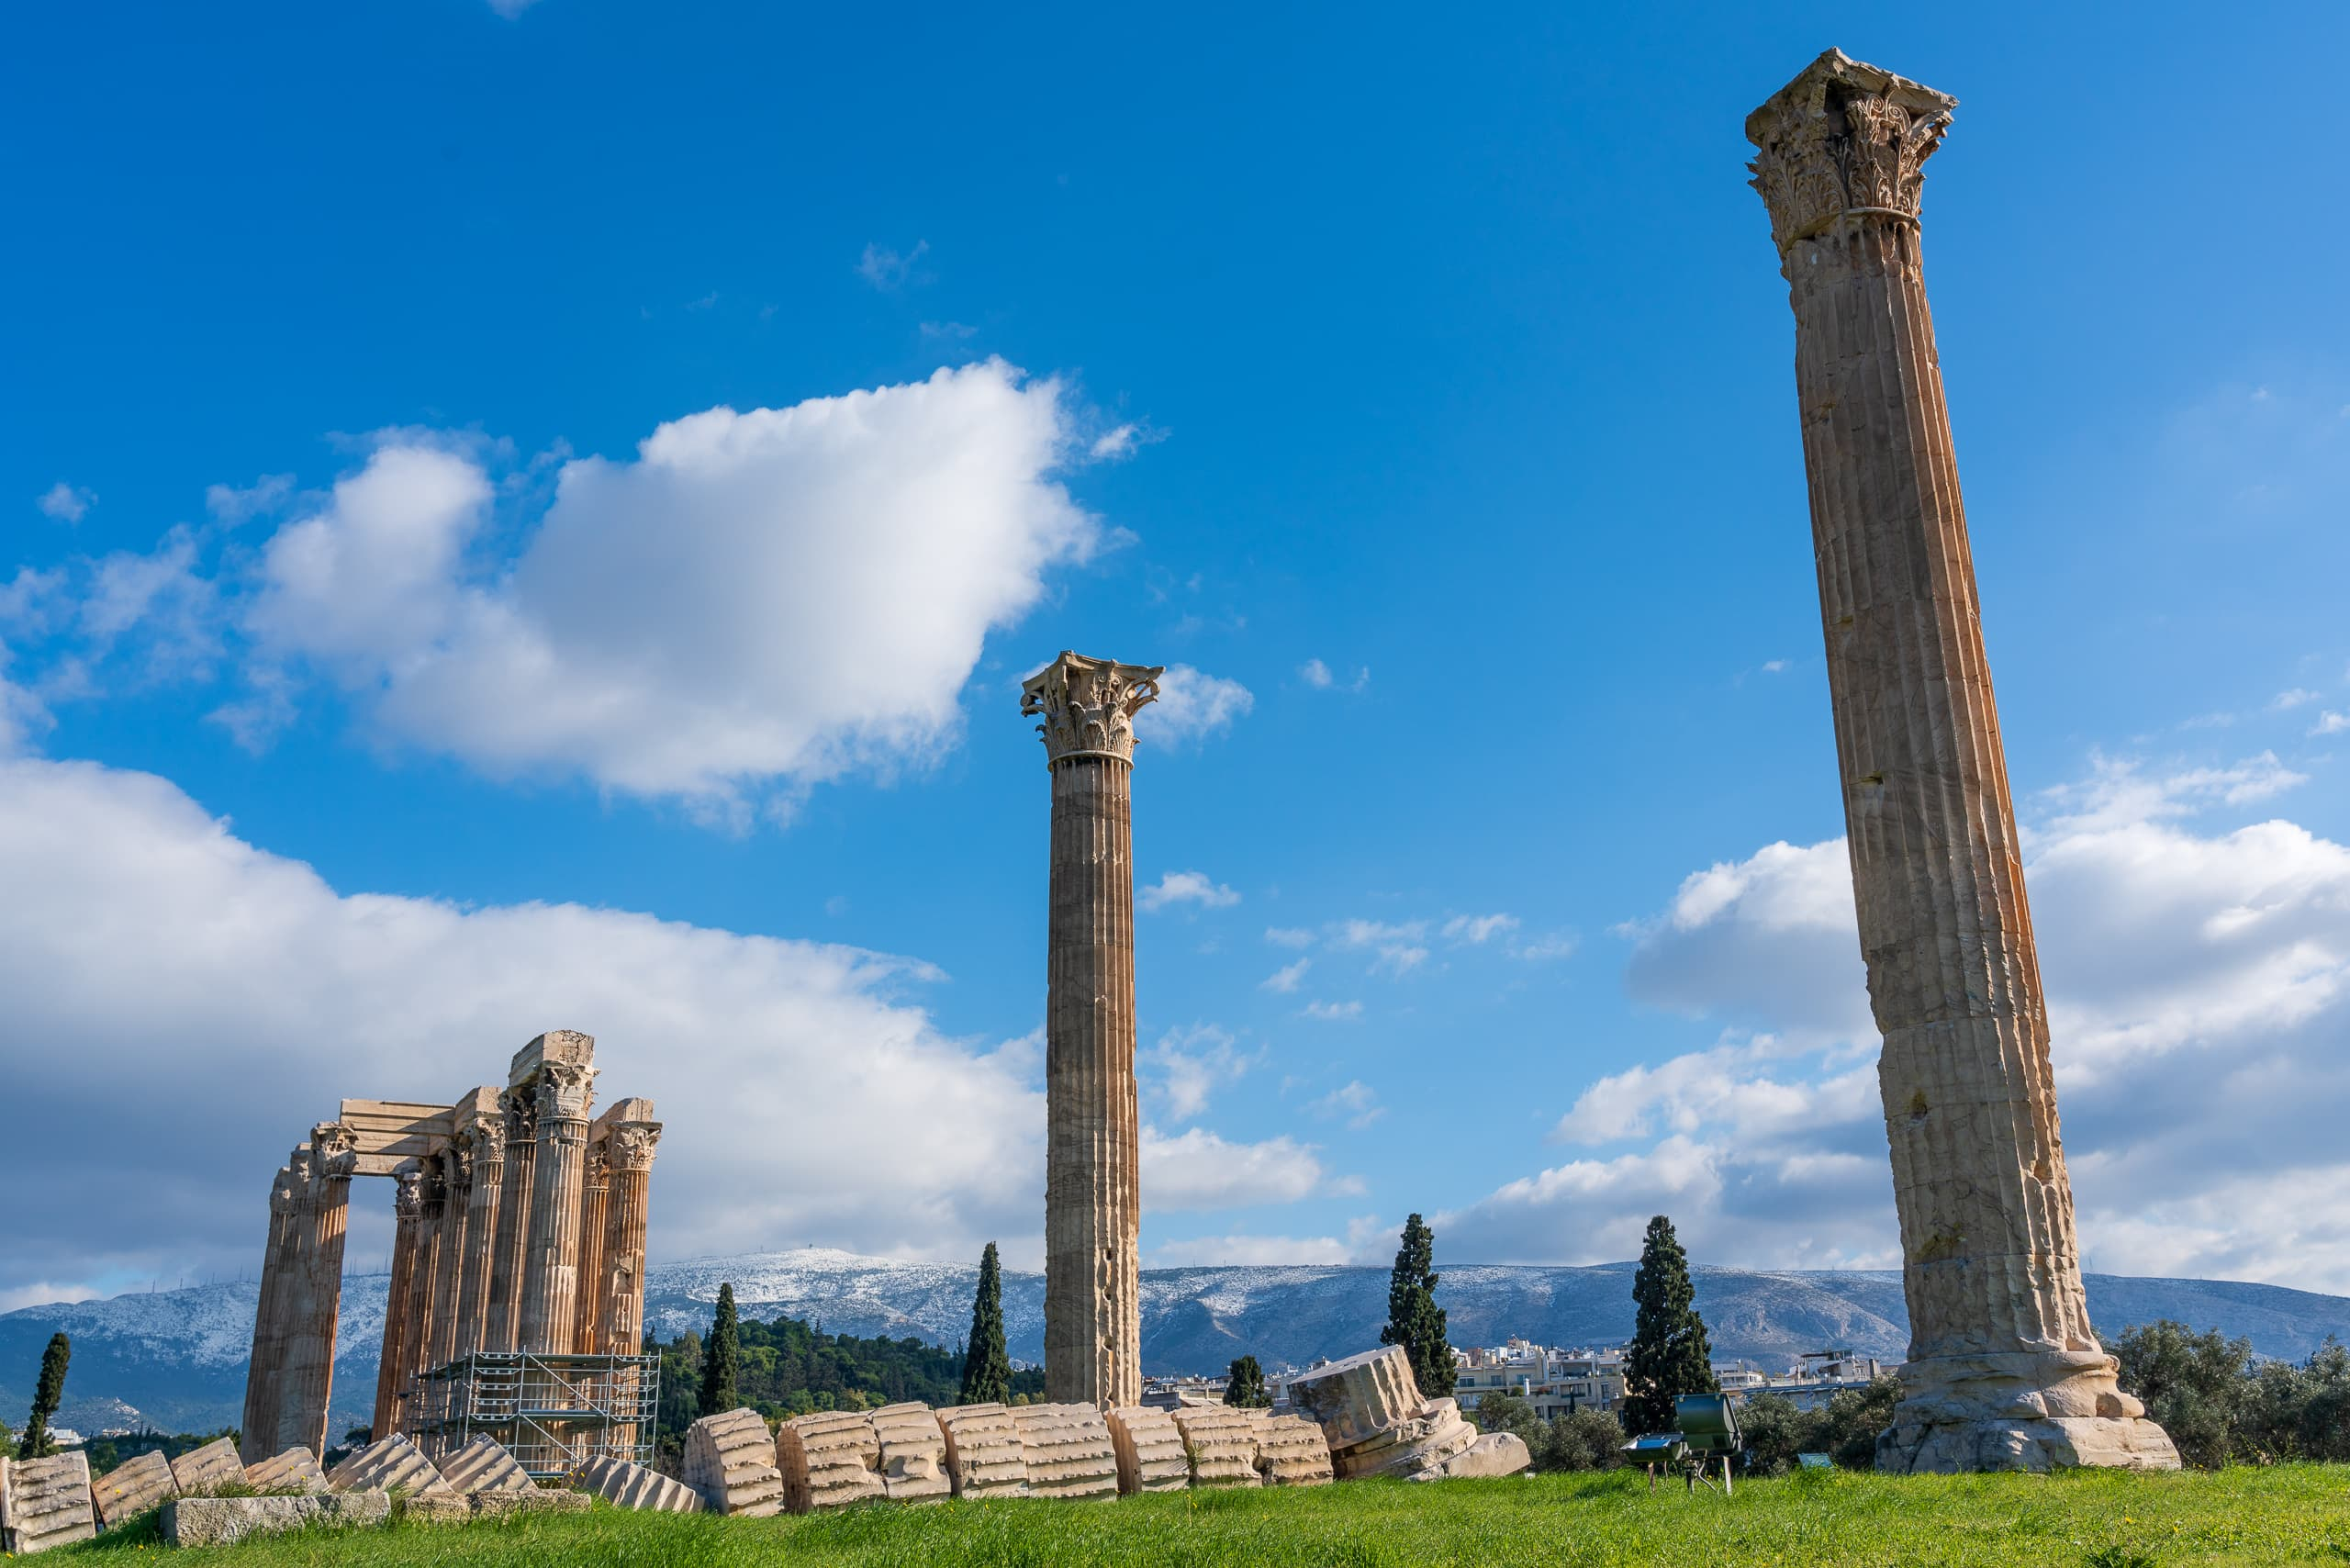 Temple of Olympian Zeus #1 | f/11 1/250sec ISO-100 31mm  | ILCE-7RM3